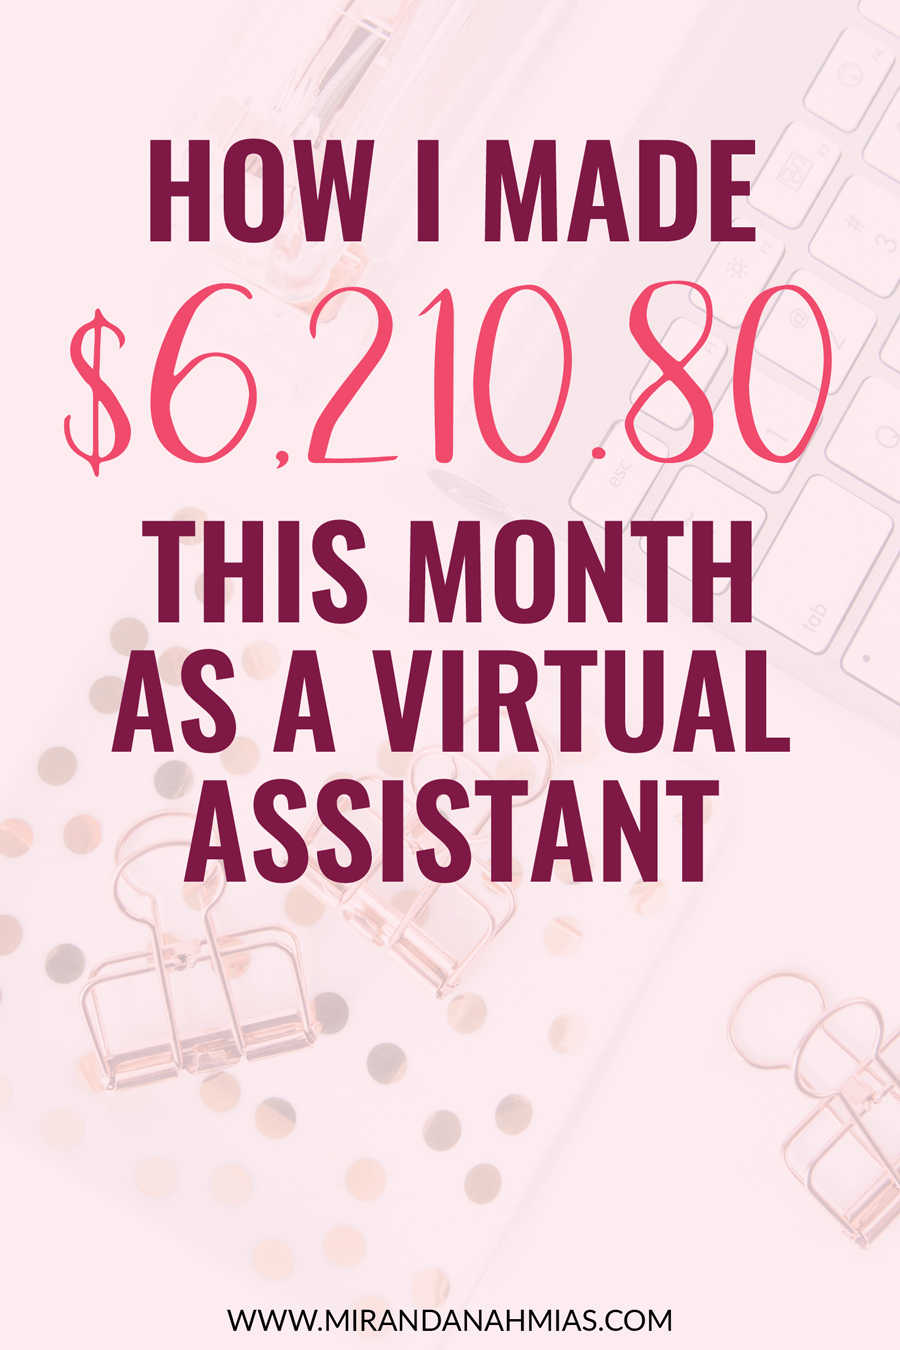 How I Made $6,210.80 as a Virtual Assistant This Month // Miranda Nahmias